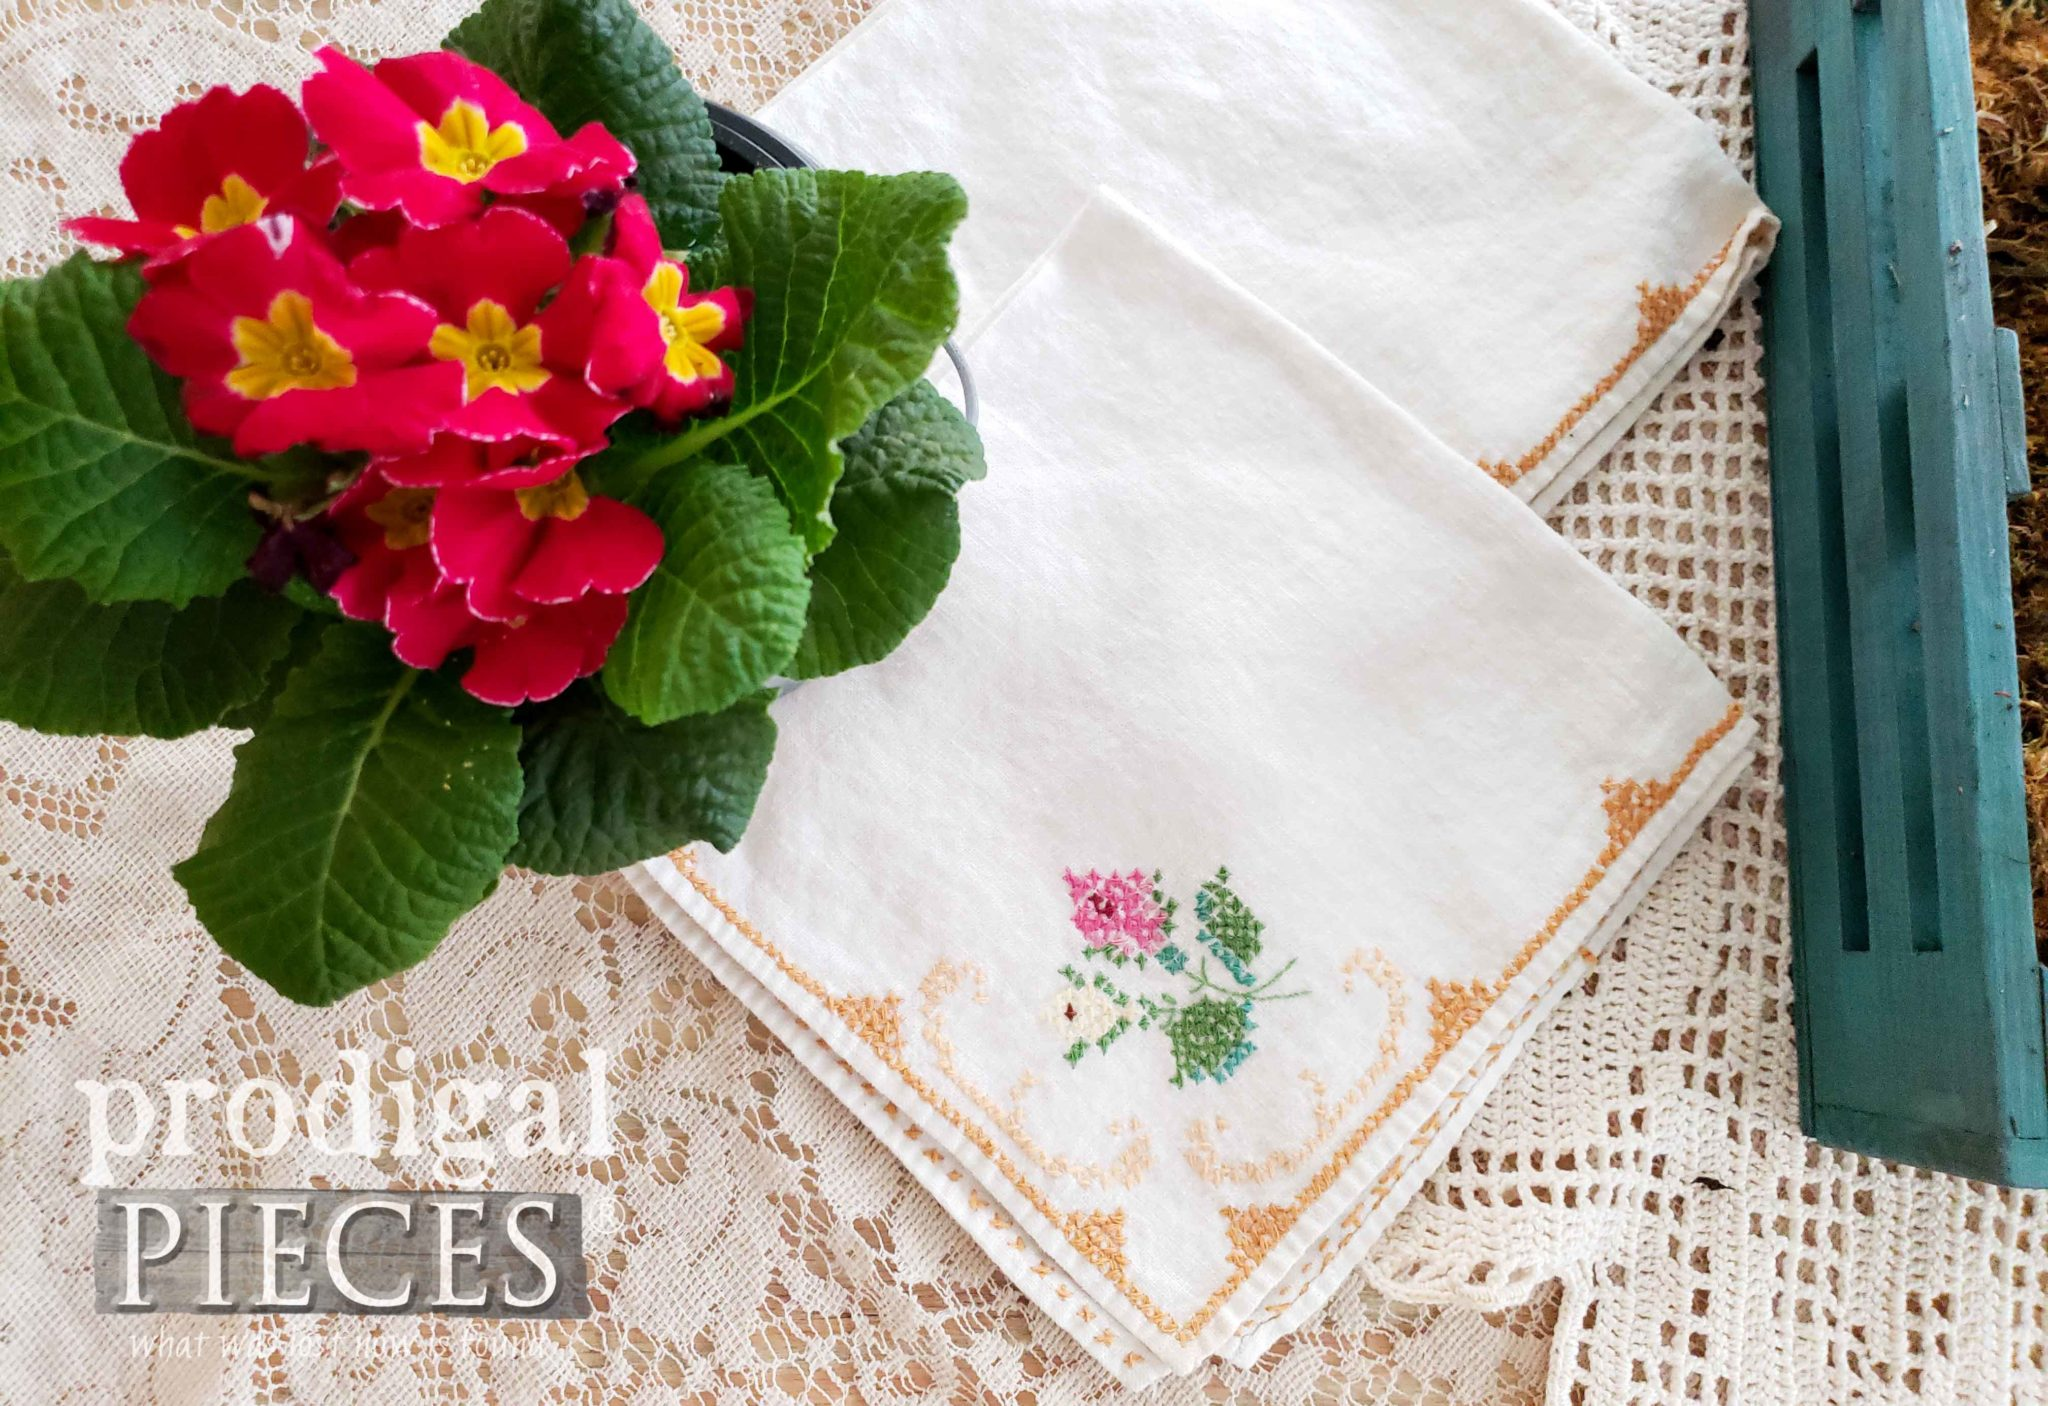 Vintage Embroidered Napkin | Prodigal Pieces | prodigalpieces.com #prodigalpieces #vintage #handmade #home